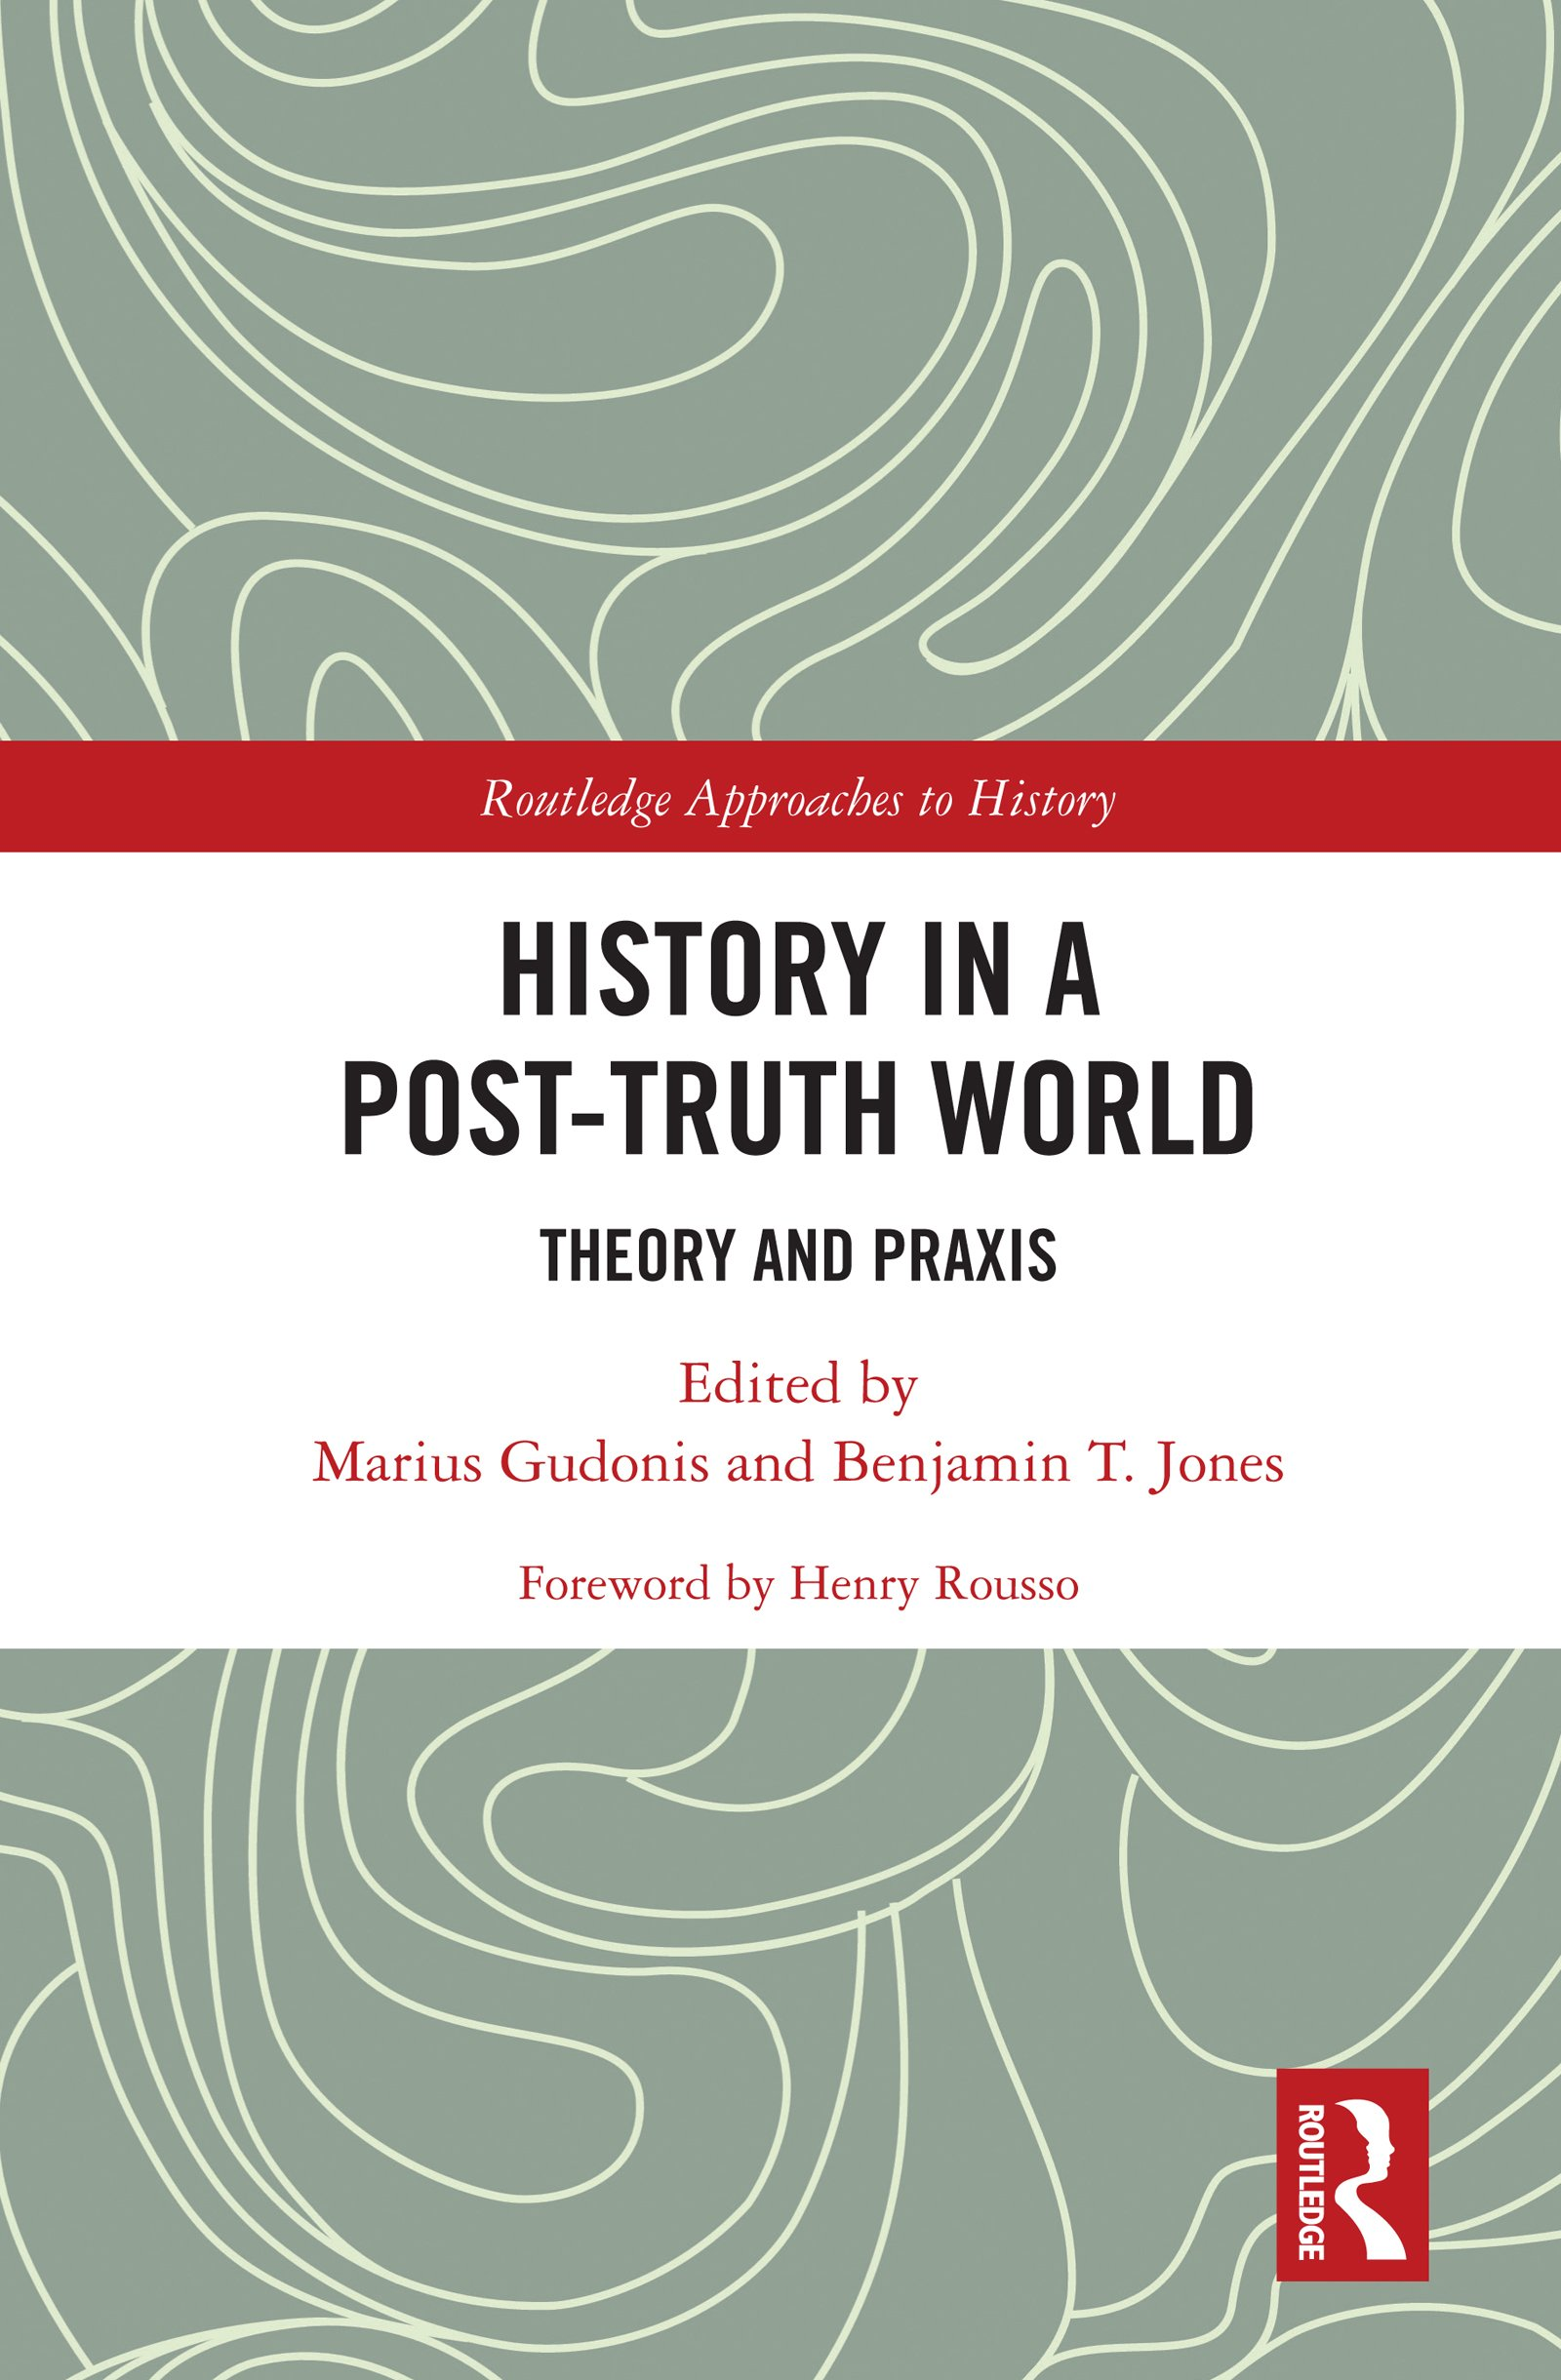 History in a Post-Truth World